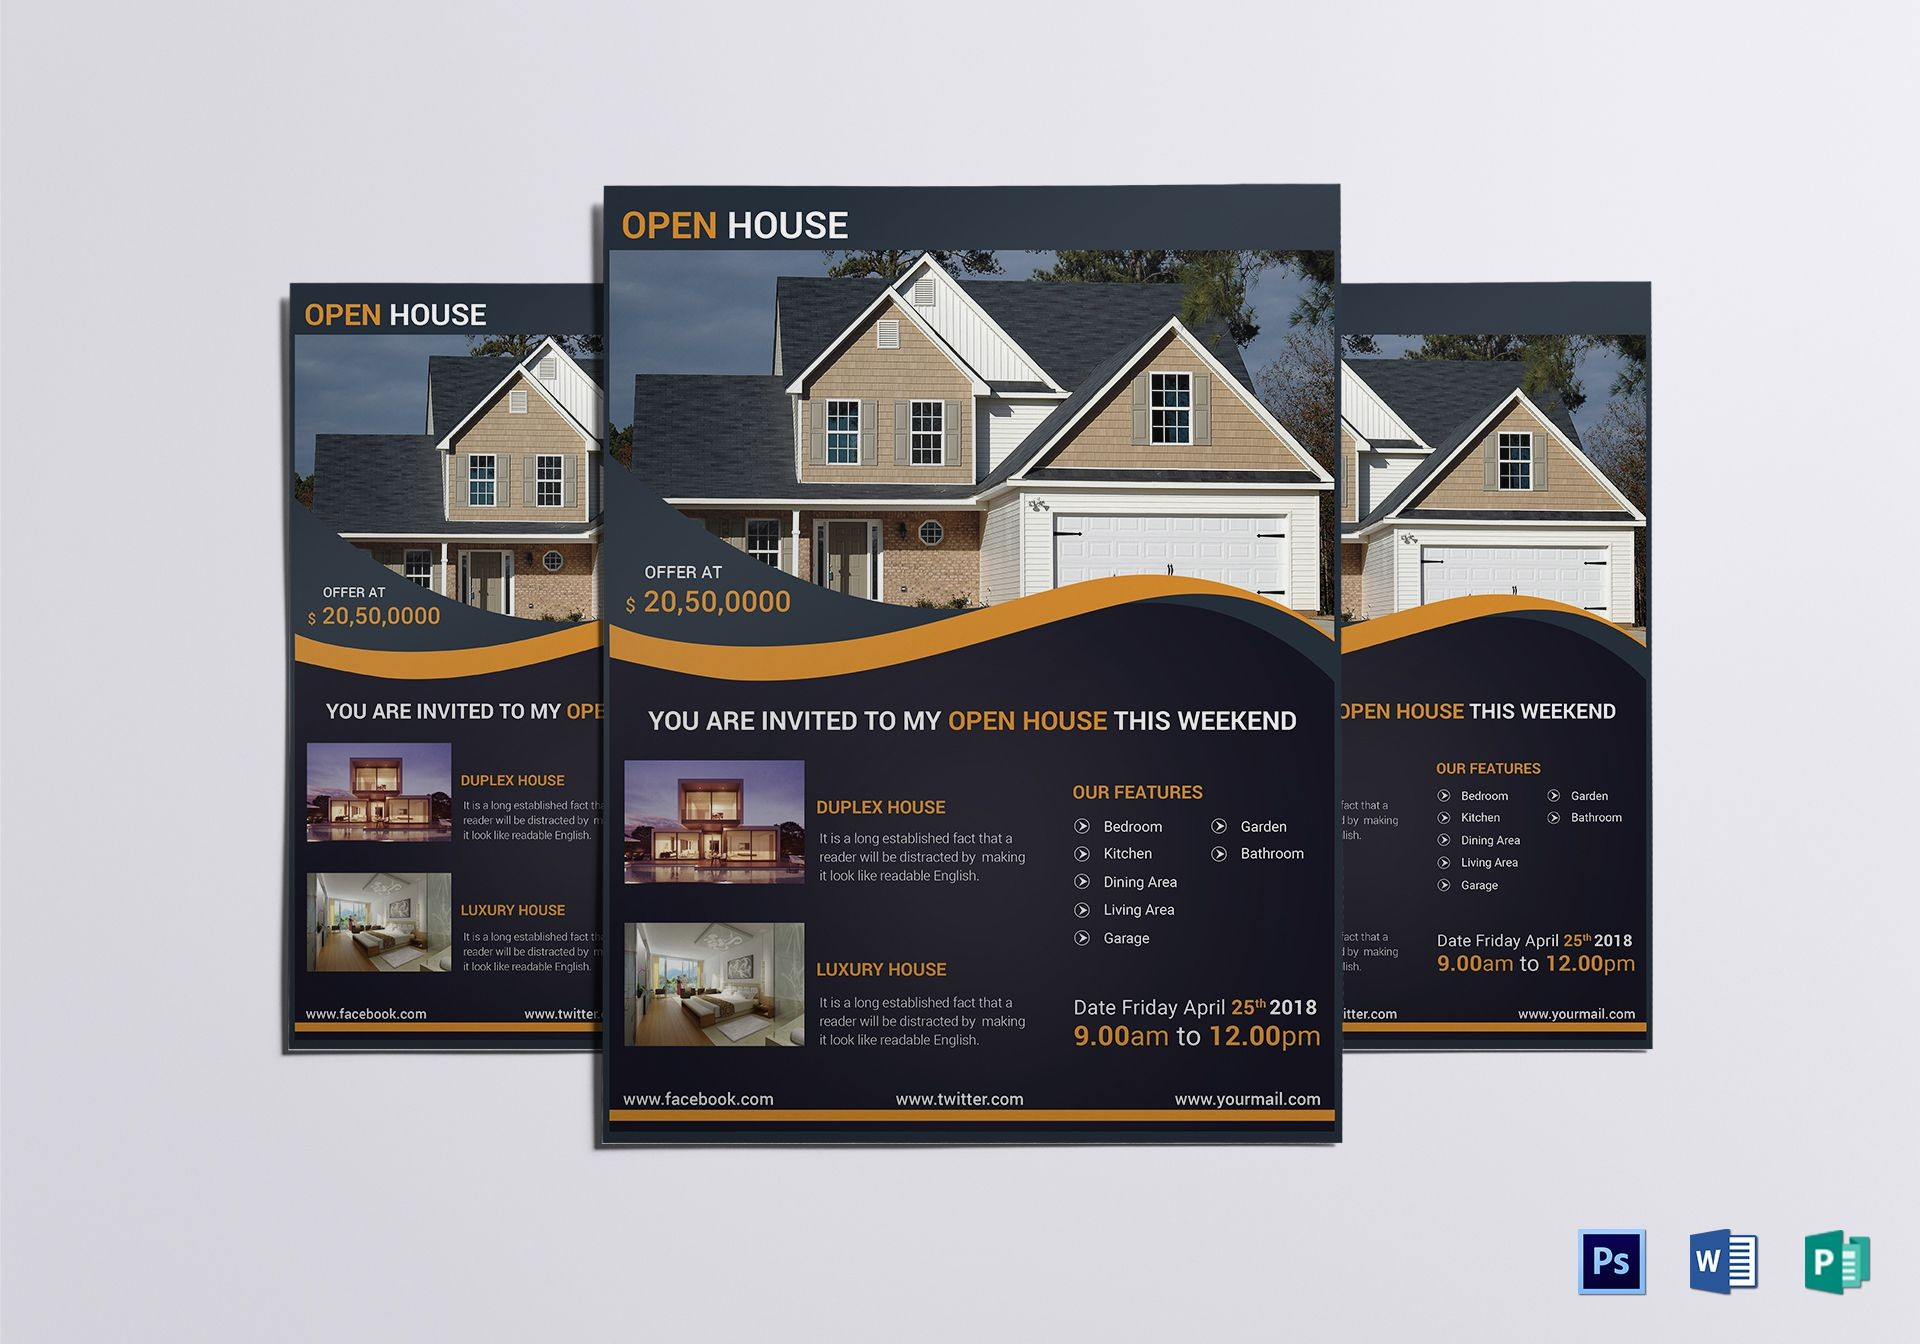 007 Simple Open House Flyer Template High Def  Templates Word Free Microsoft Real Estate1920